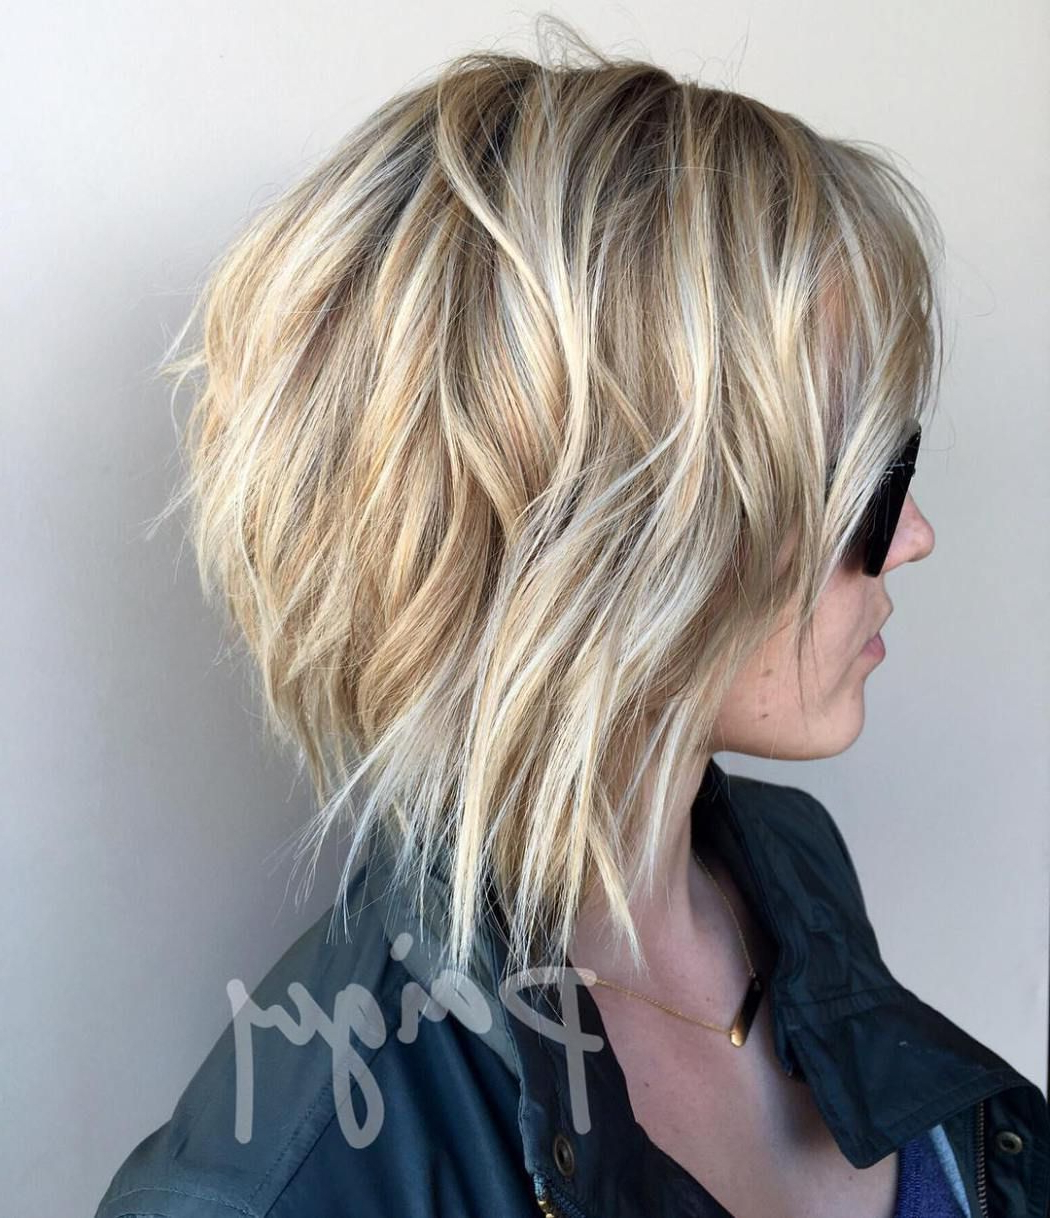 Widely Used Longer Tousled Caramel Blonde Shag Haircuts Intended For Pin On Hair (View 10 of 20)